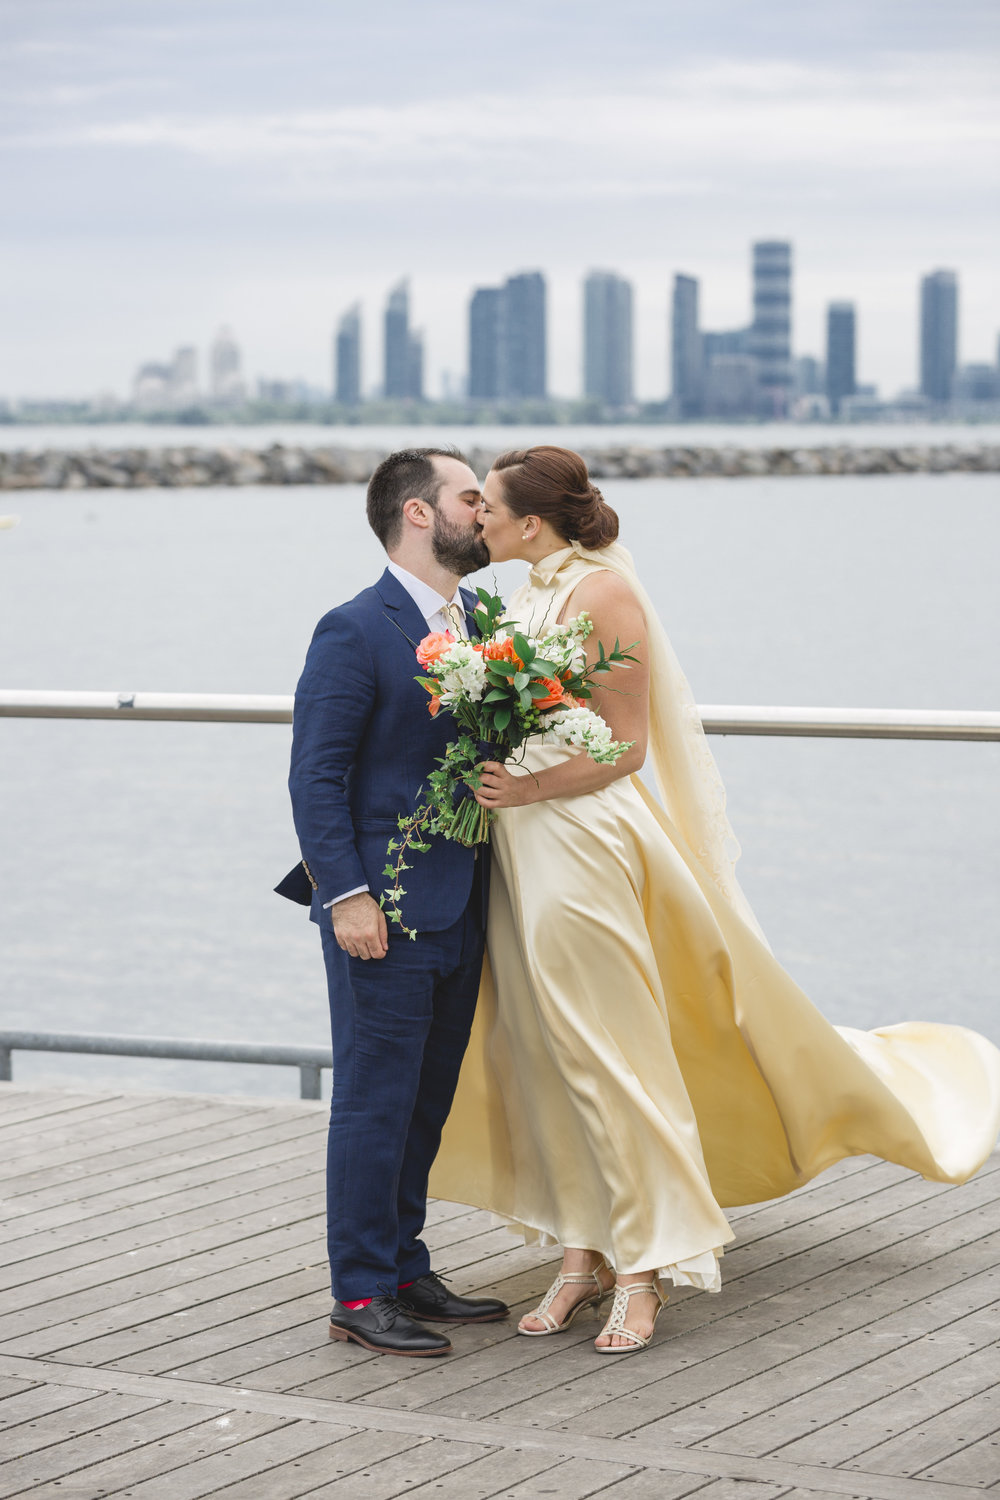 Wedding Couple at Toronto Argonaut Rowing Club